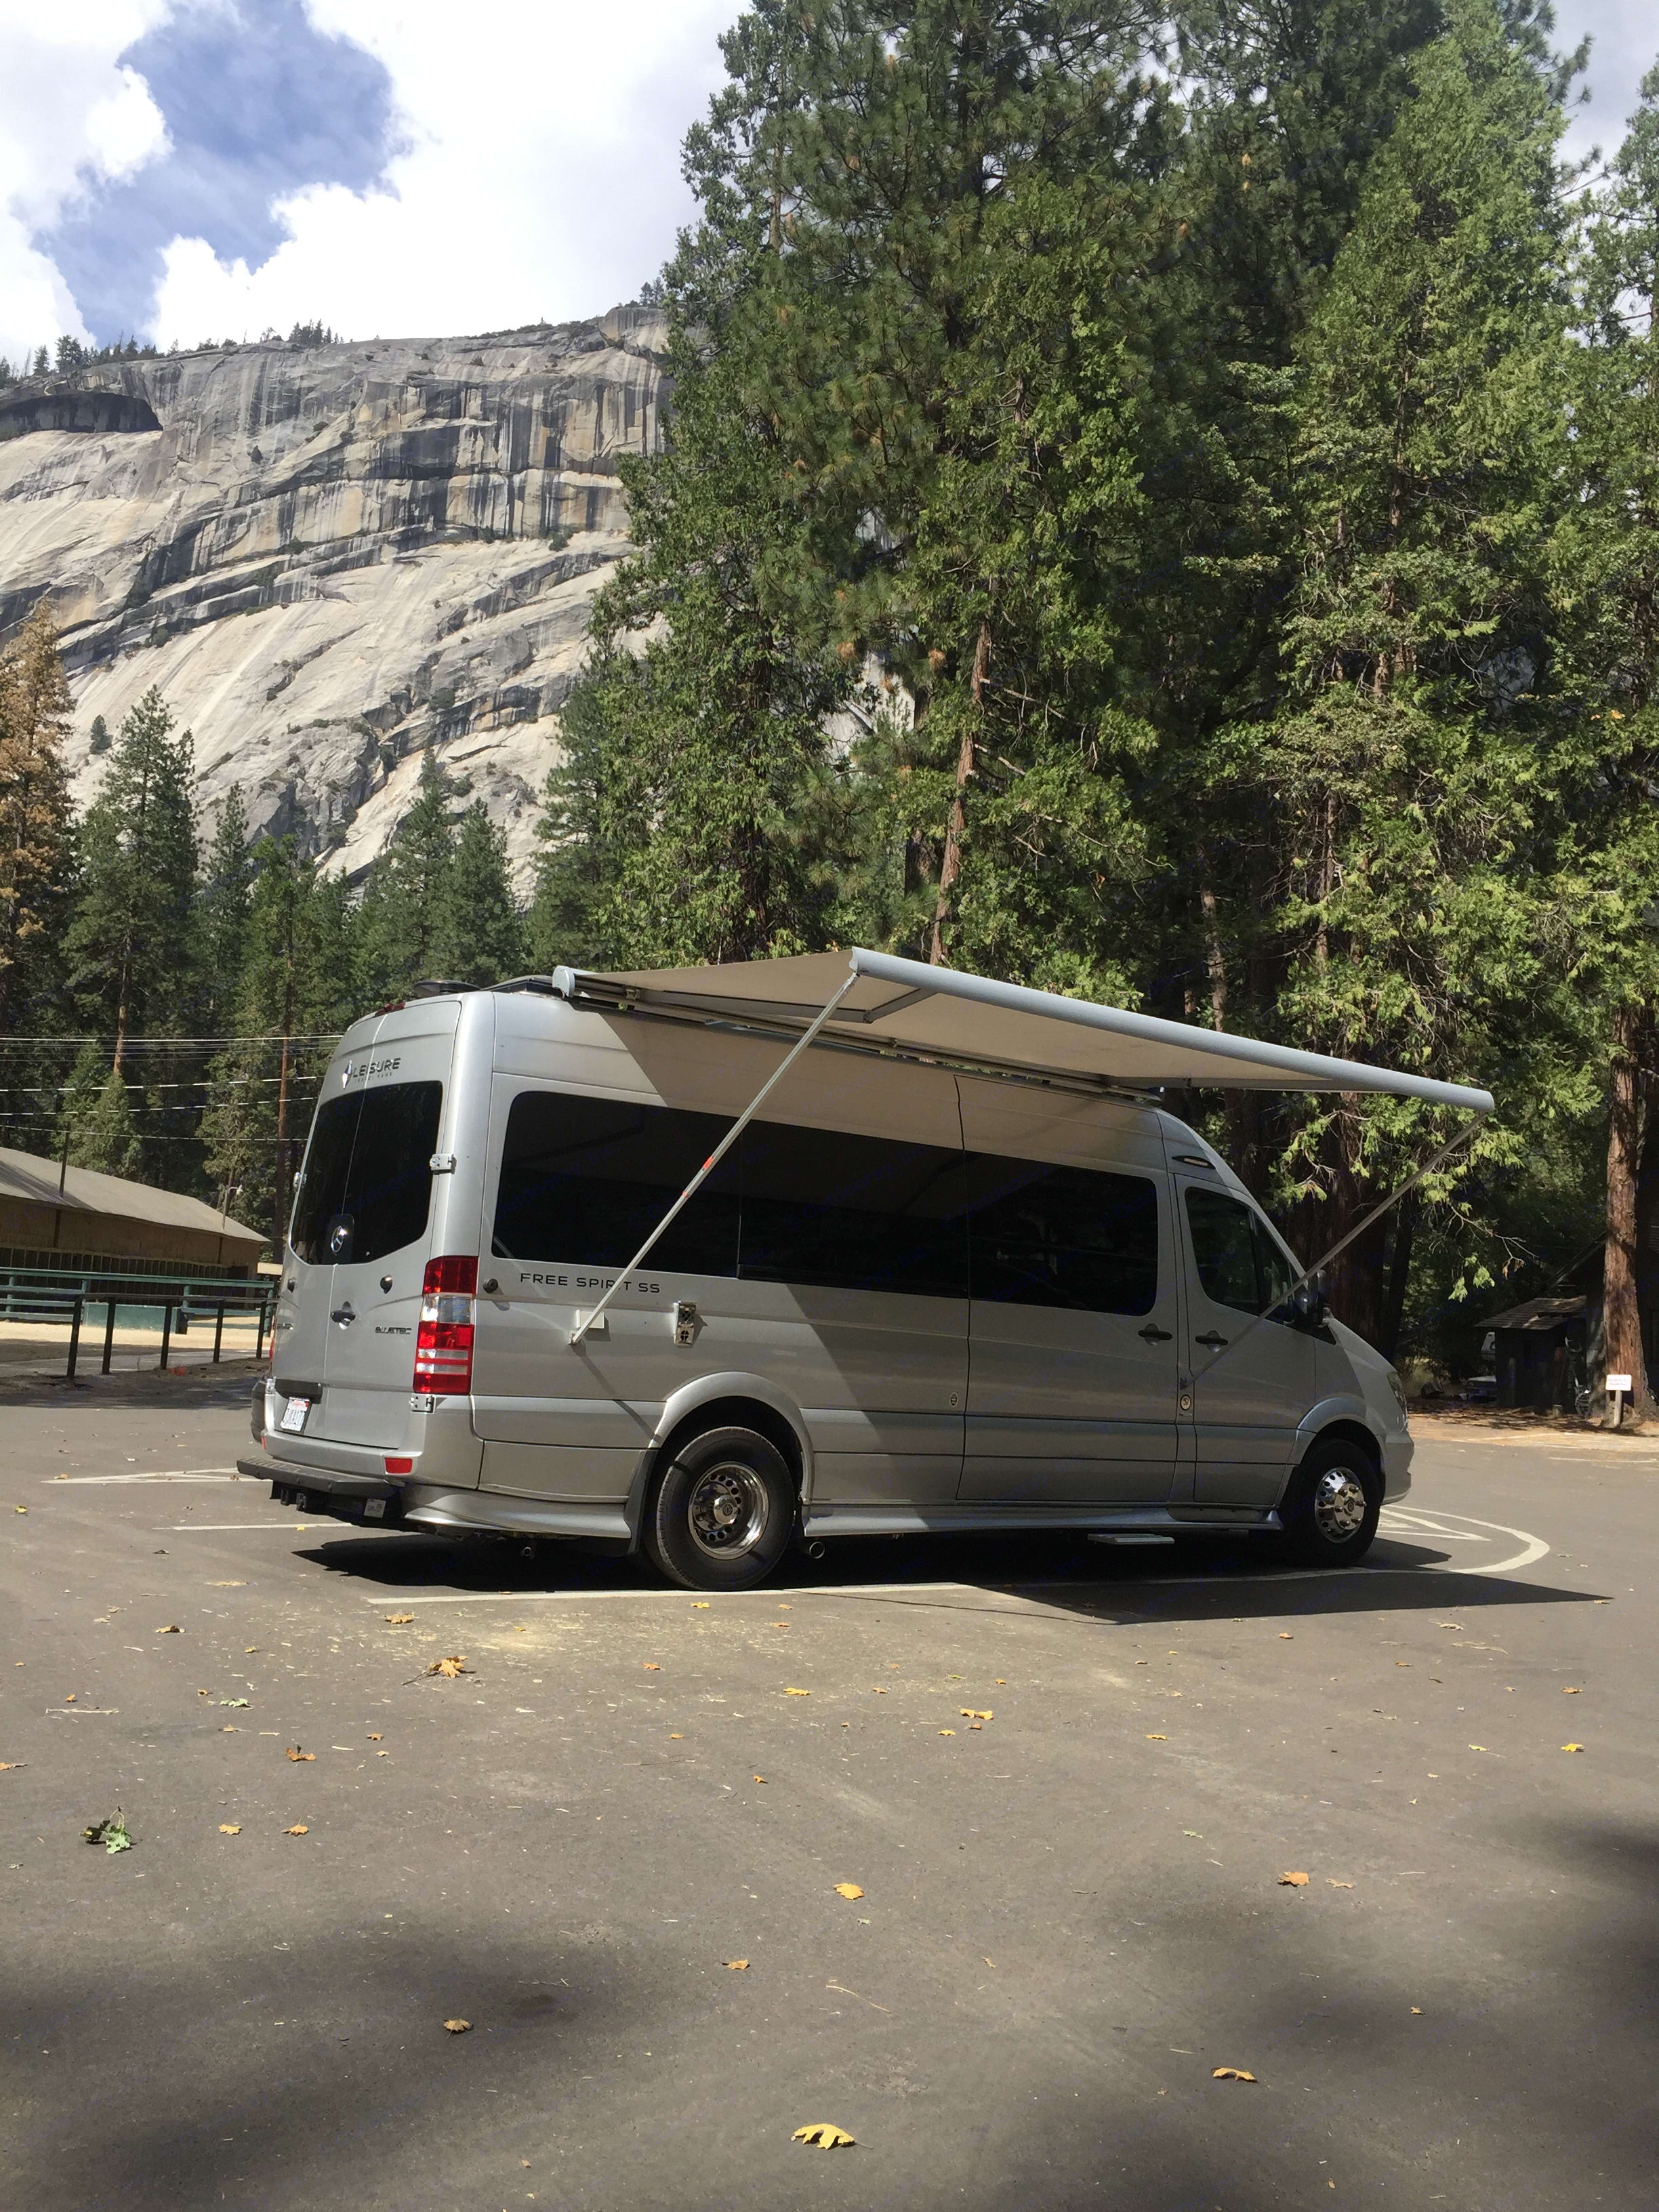 Sun is changing angle, throw out the awning. . Leisure Travel Free Spirit 2016